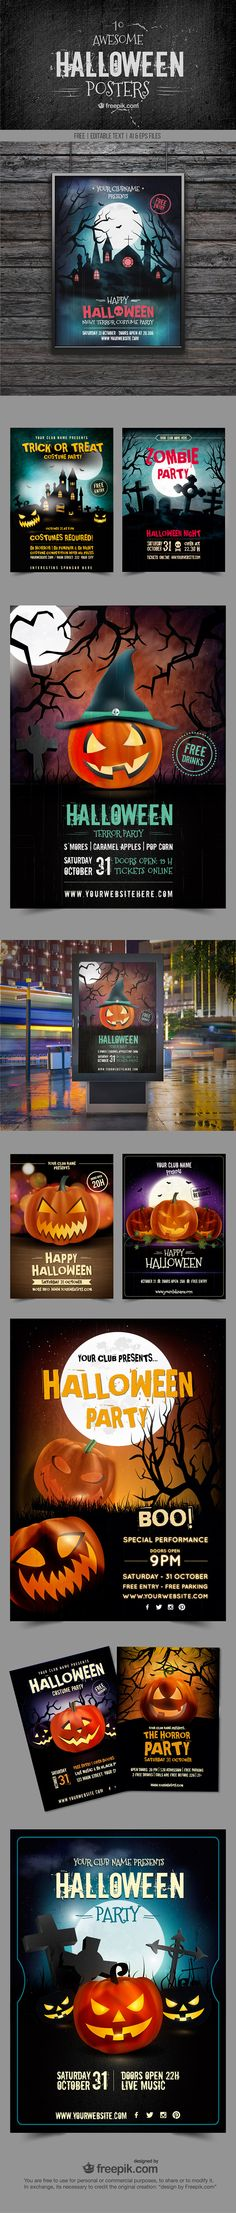 Freebie: 10 Awesome Halloween Posters